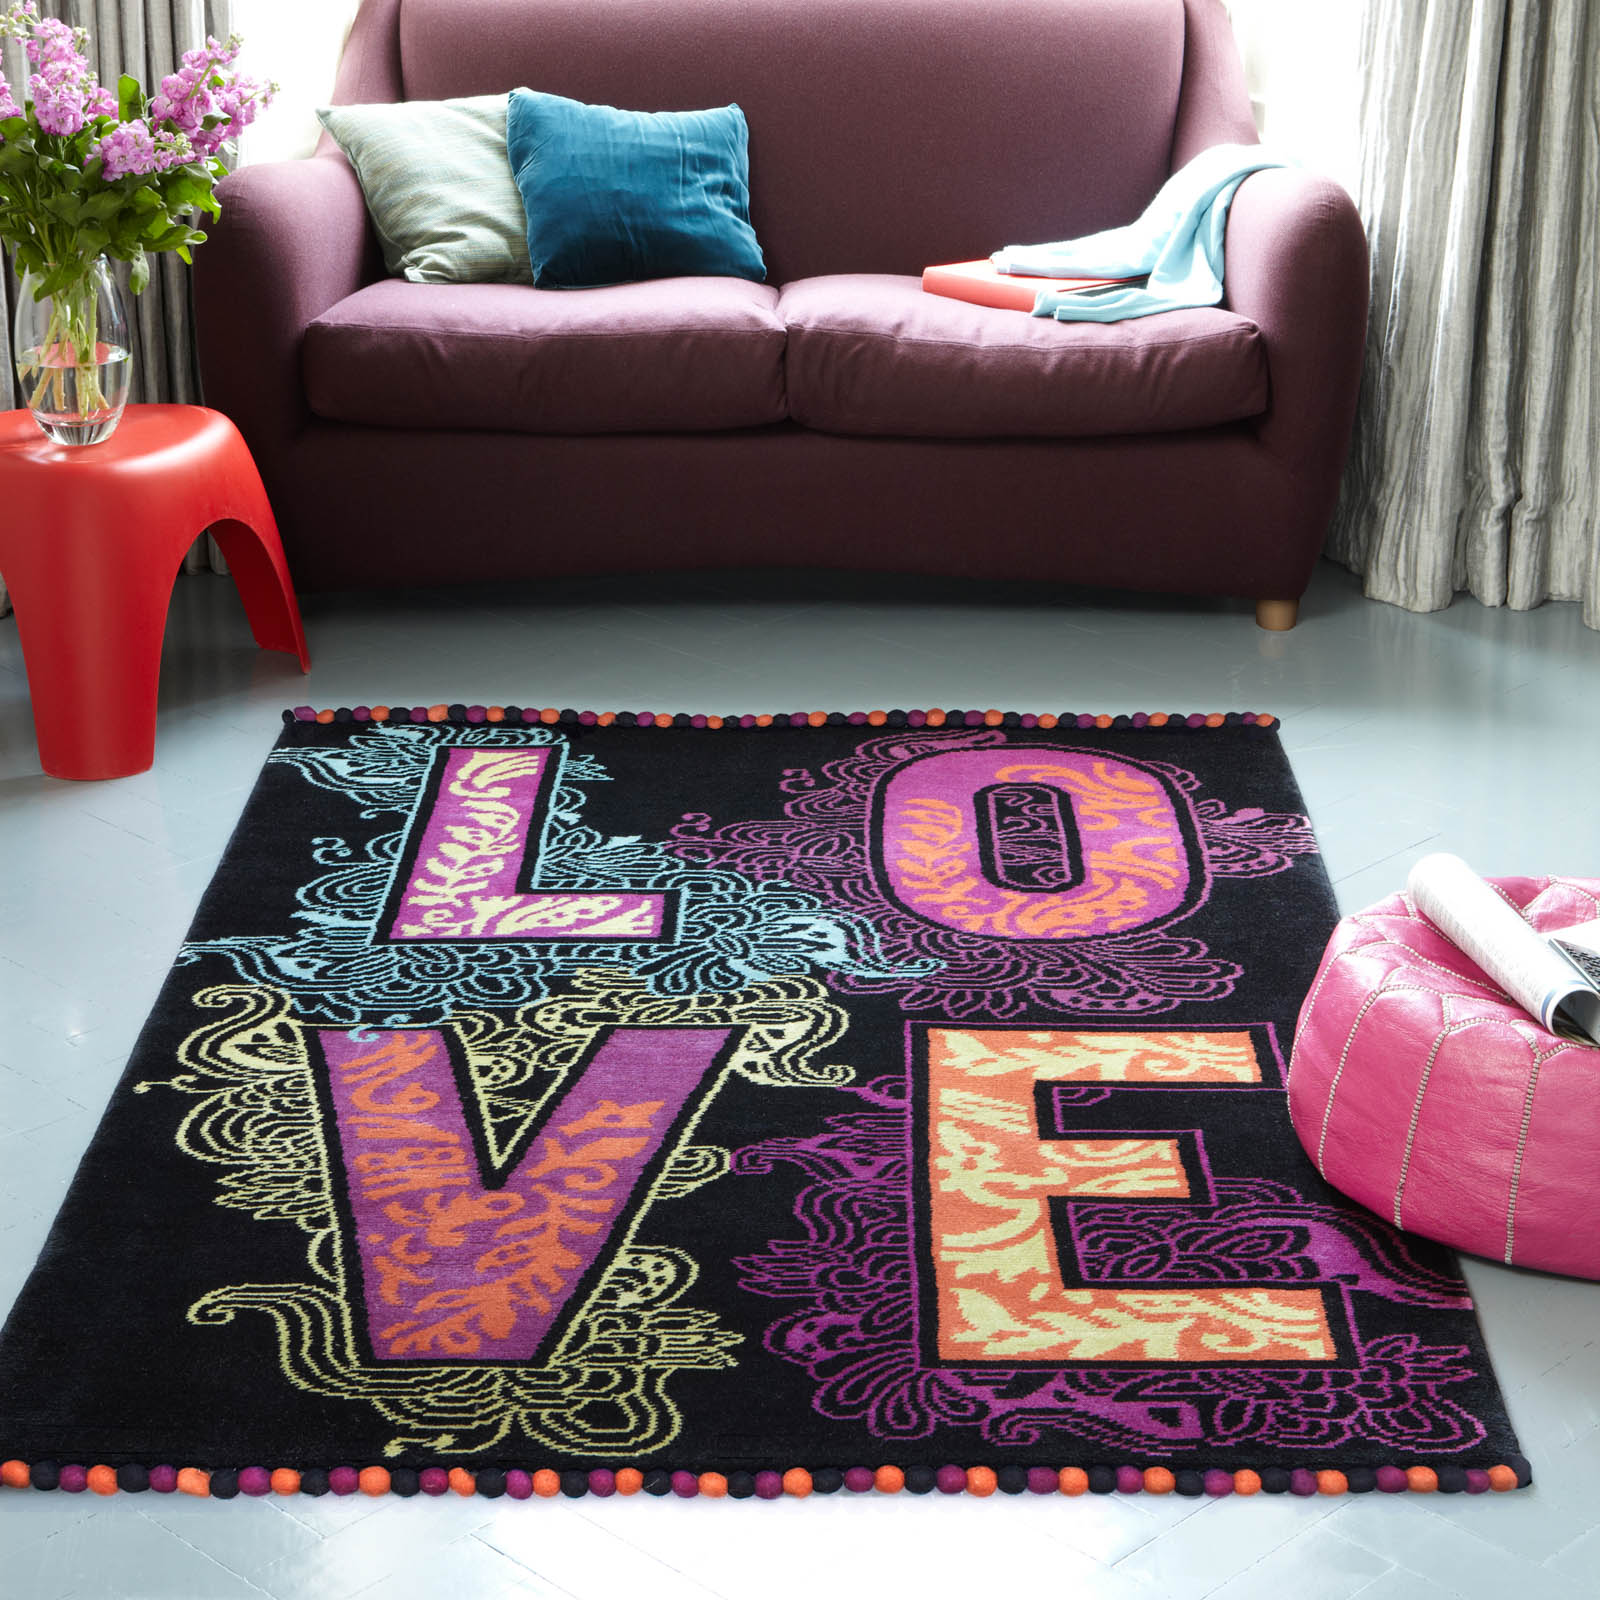 Plantation Love Rug - Hand Knotted Pure Wool